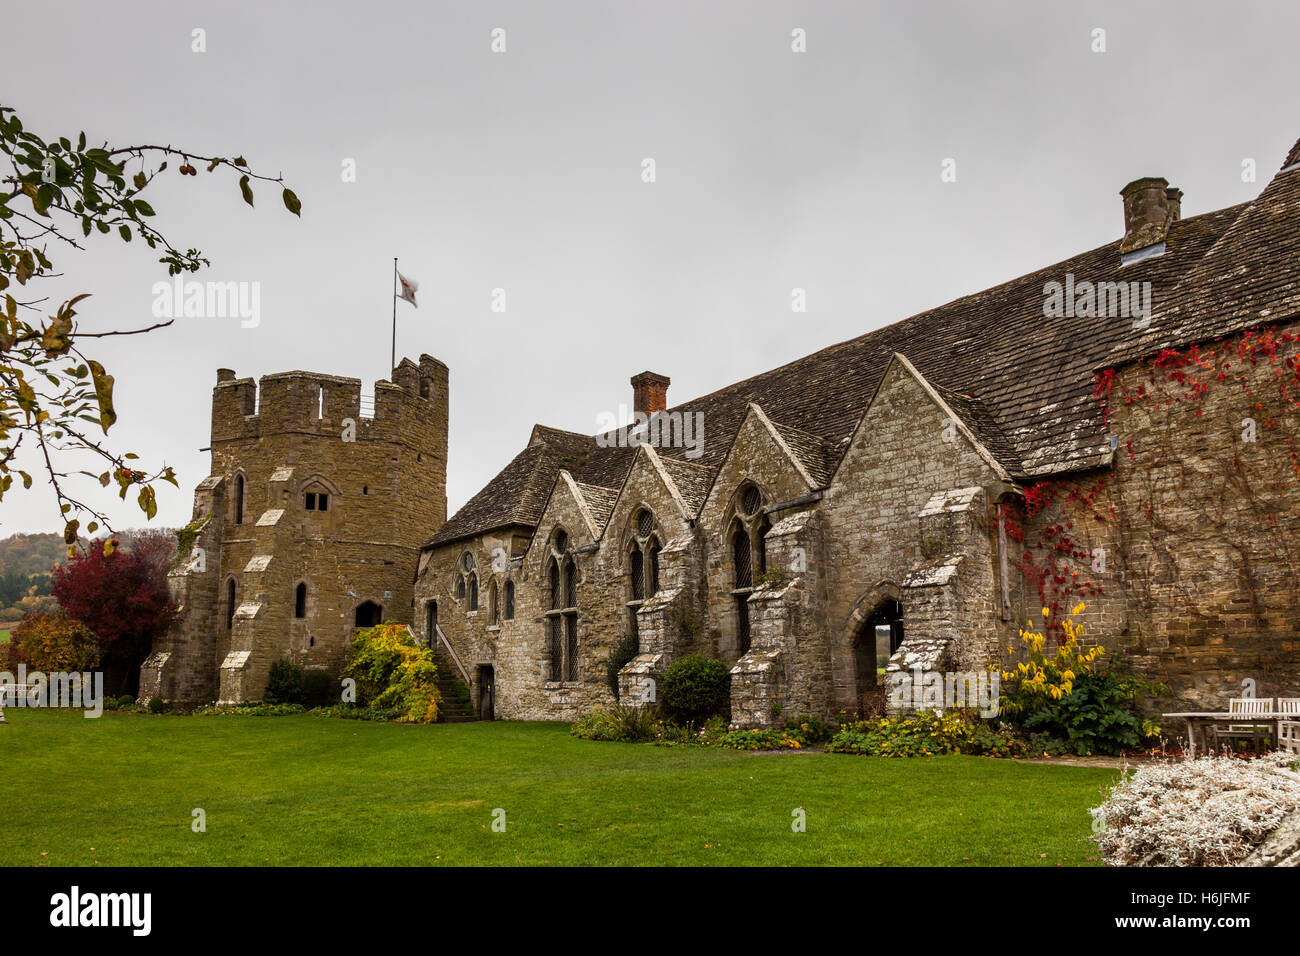 The tower and fortified manor house of Stokesay castle, near Craven Arms, Shropshire, England, UK - Stock Image